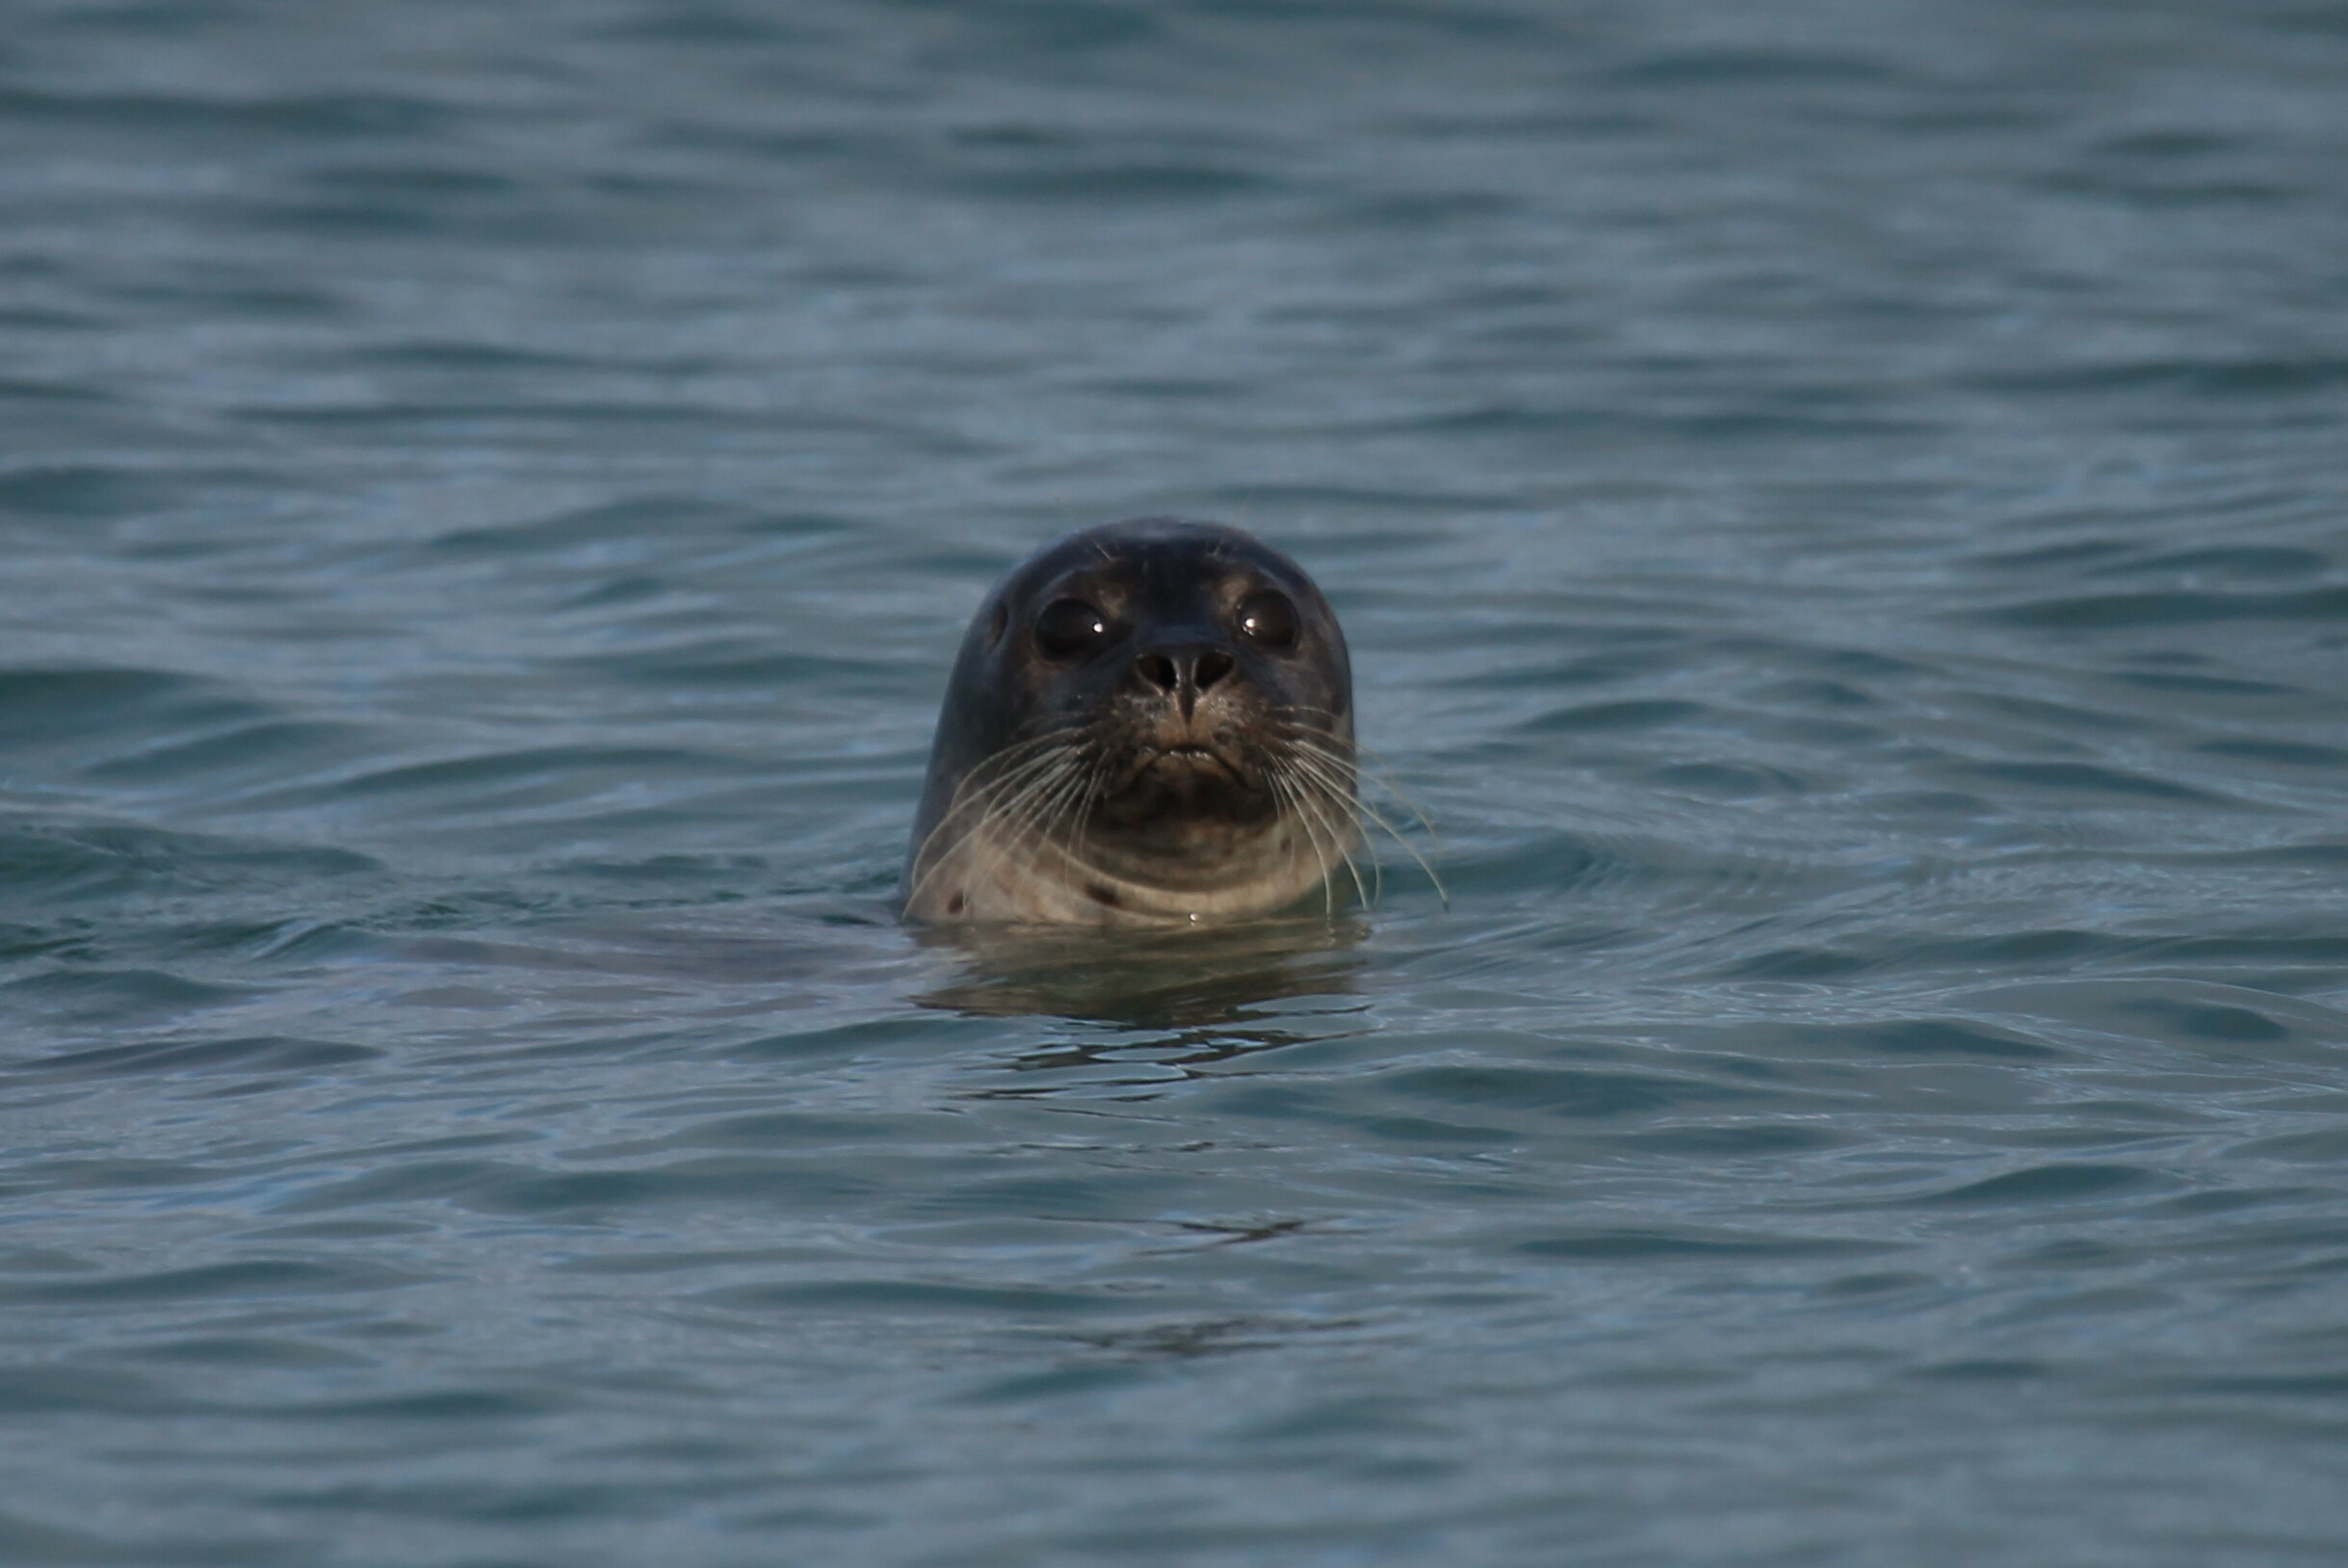 Common Seals like to take a long, hard look at beach-goers!